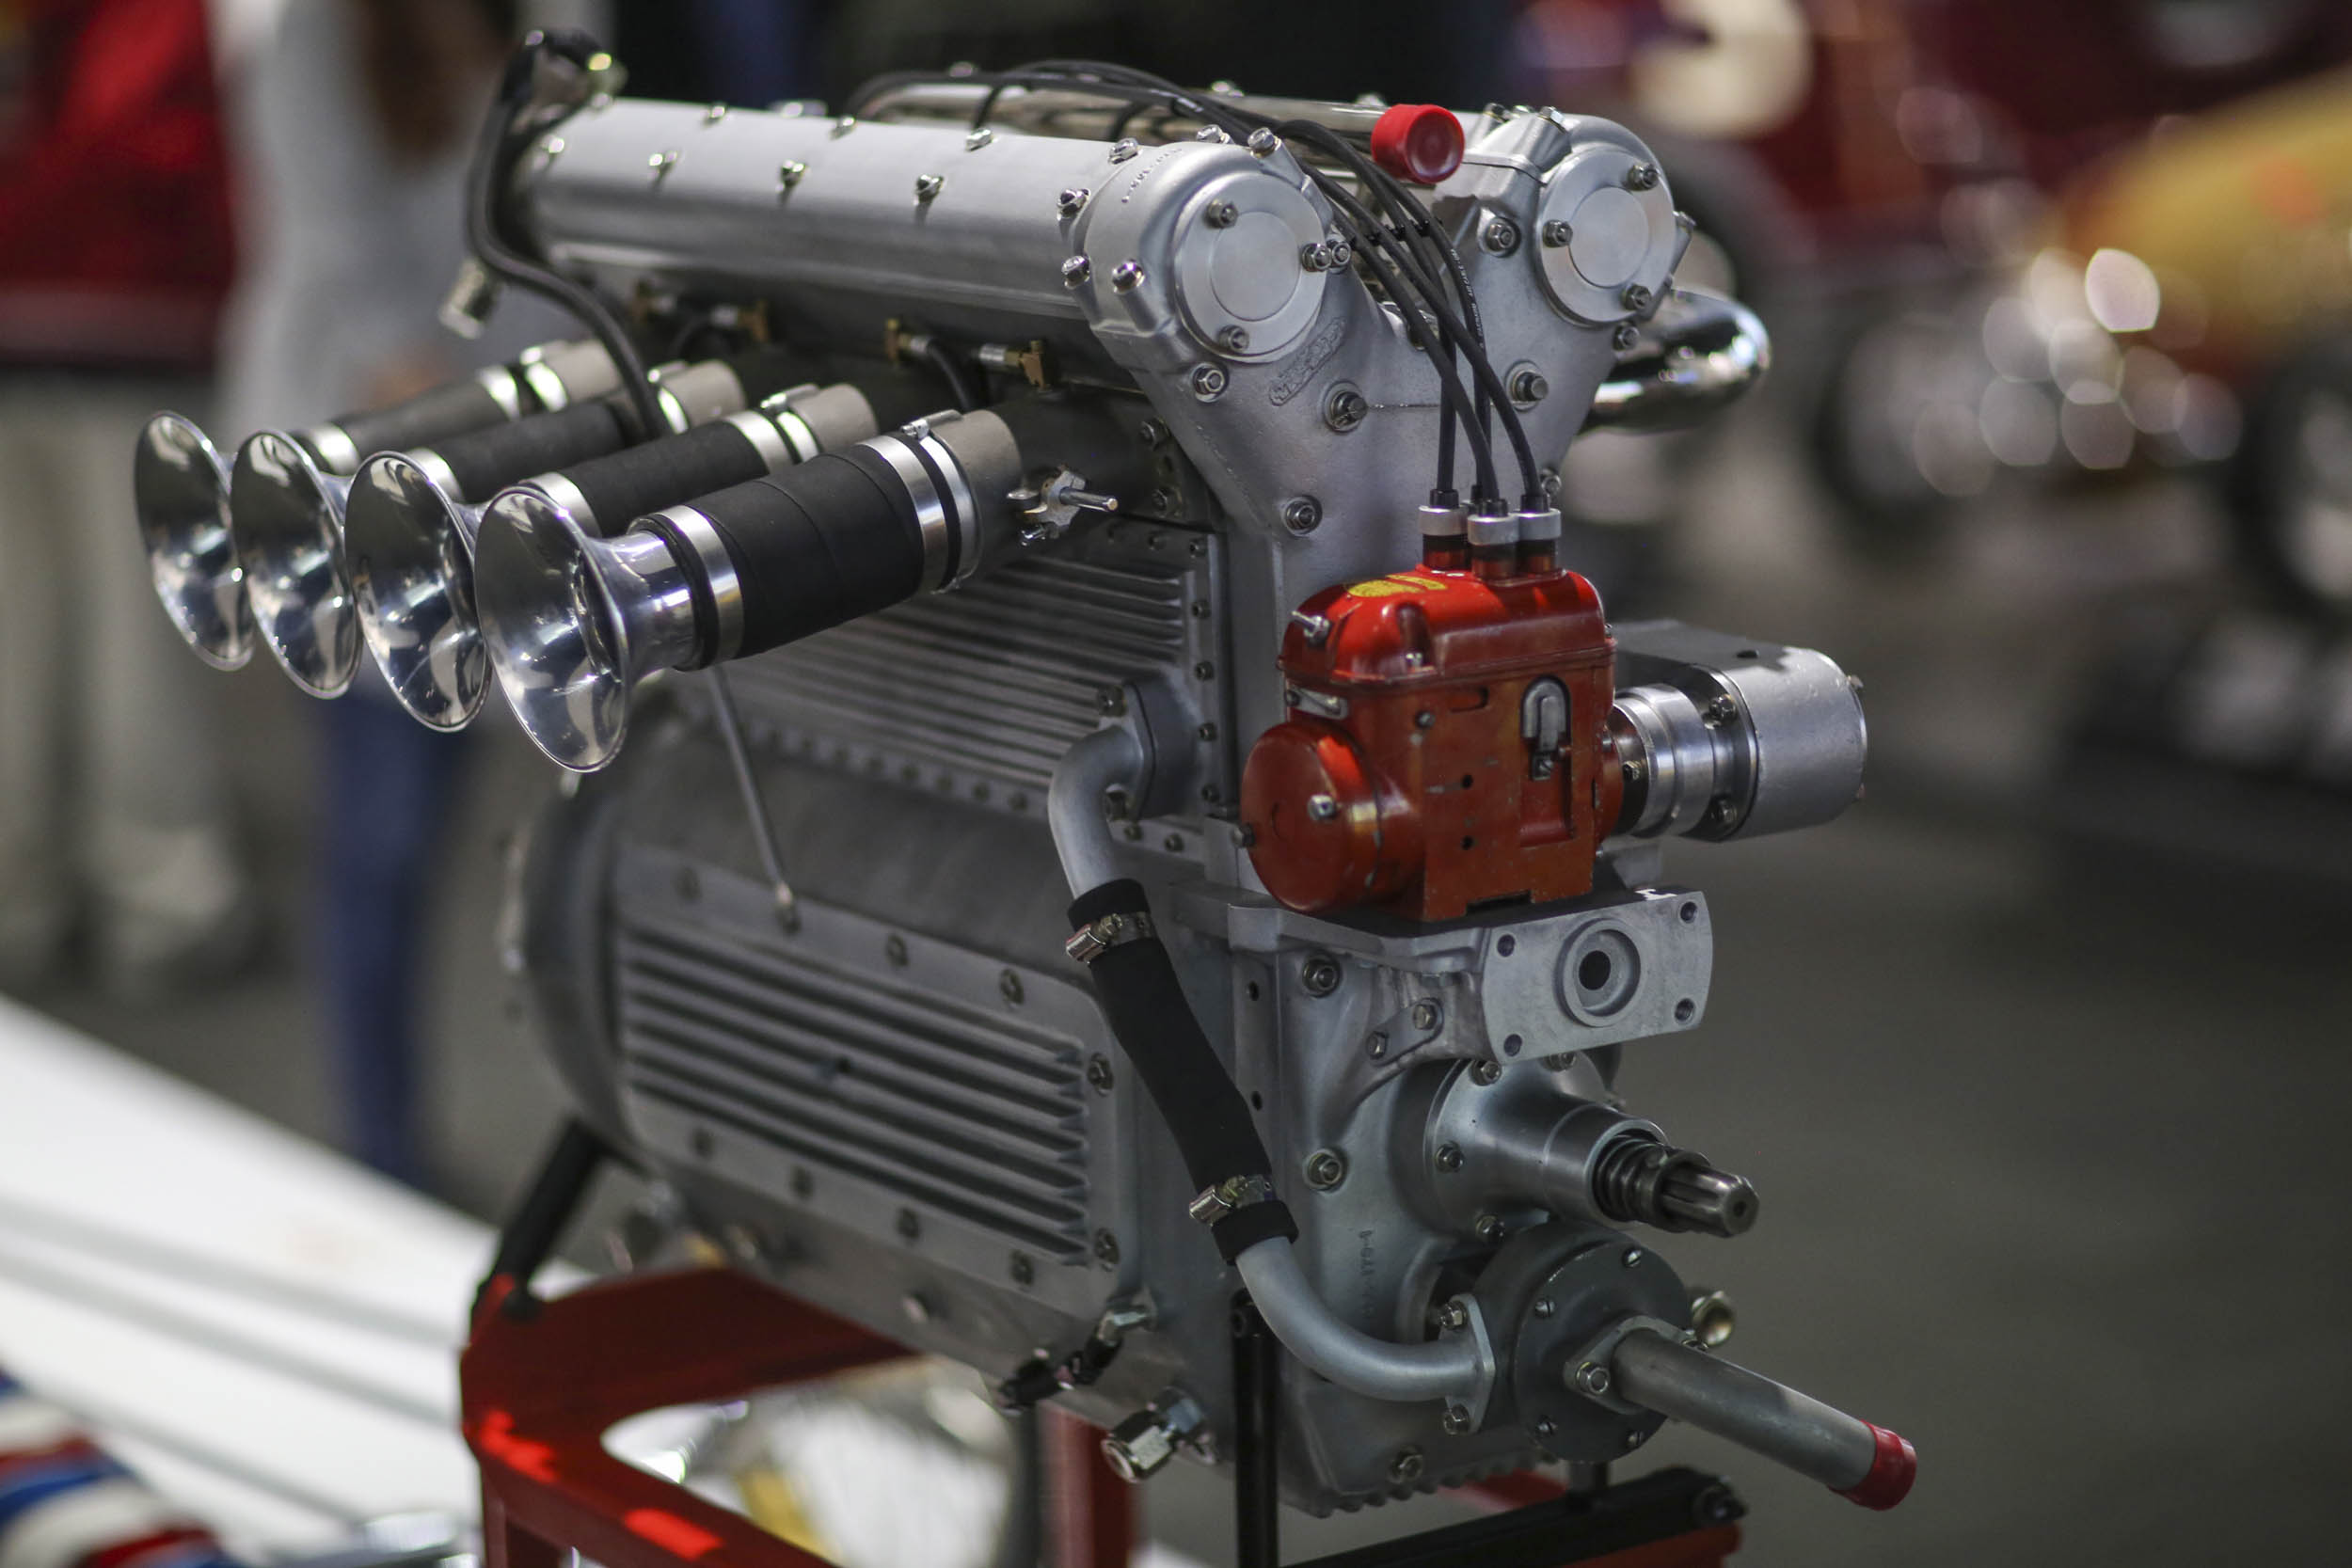 Every Indy 500 winner from 1947 to 1964 was powered by an Offenhauser engine